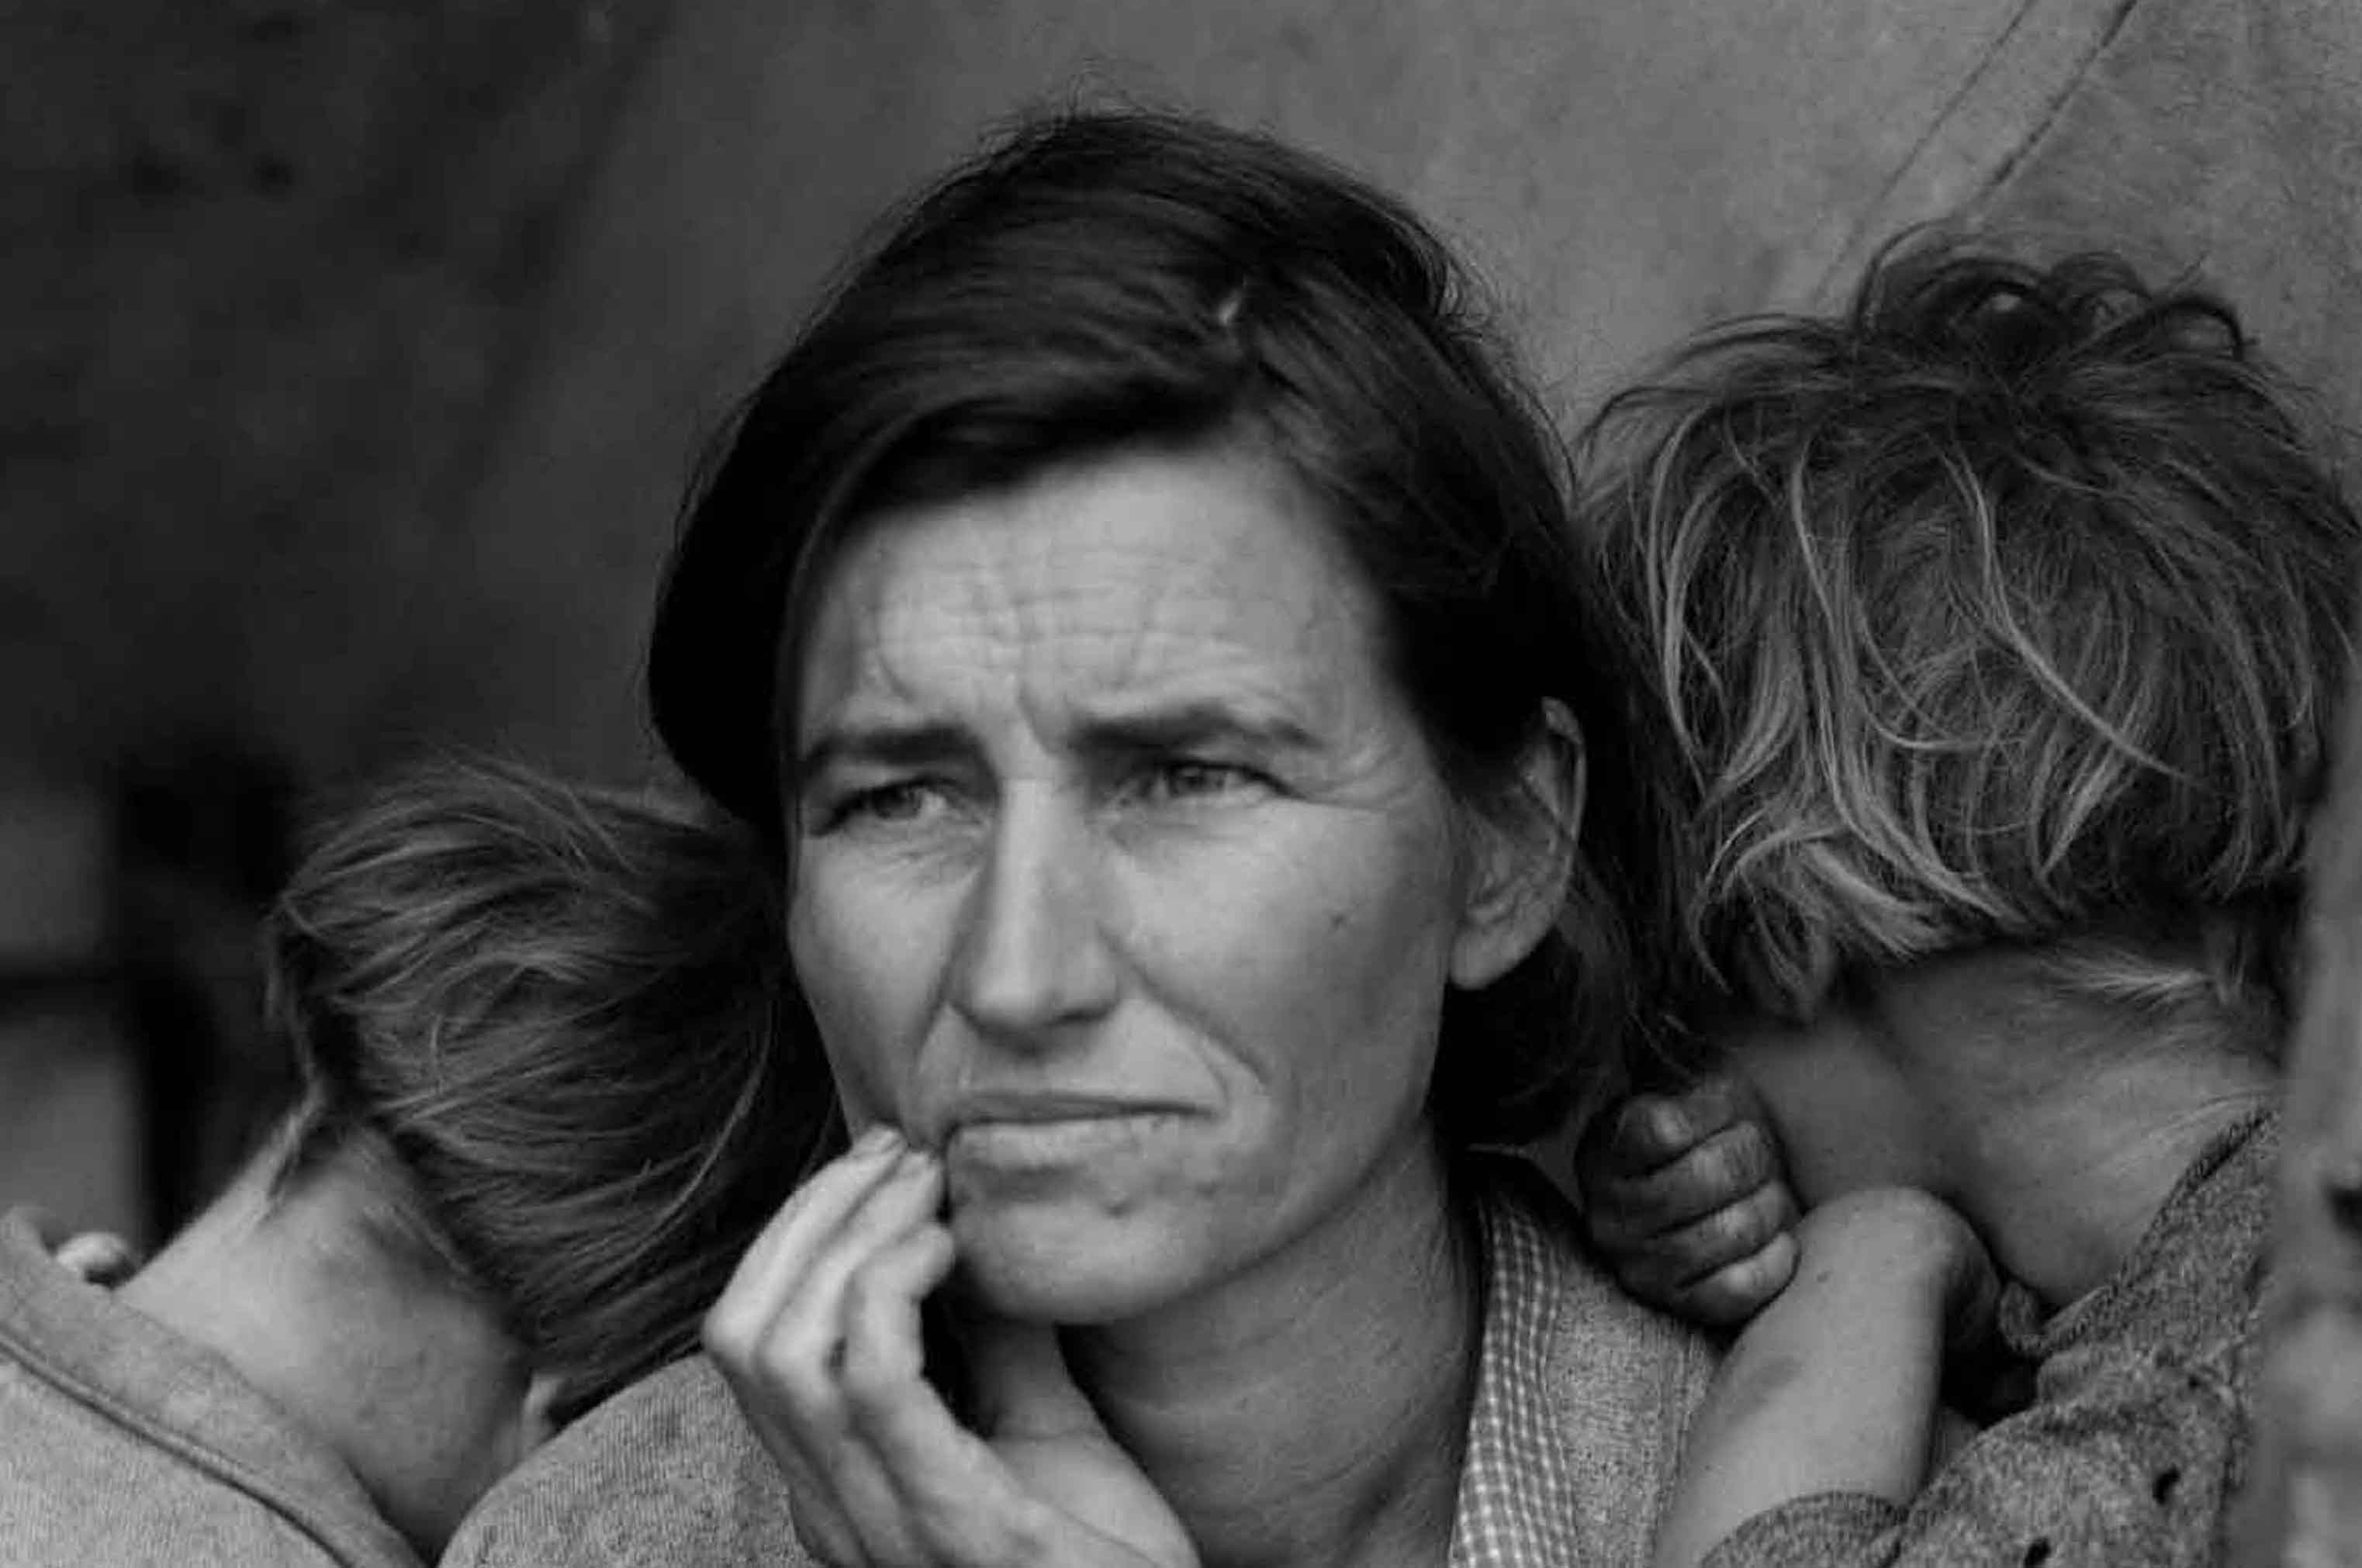 Woman looking pensive holding two children. Migrant Monther by Dorothea Lange, collection of the Oakland Museum of Caliofornia